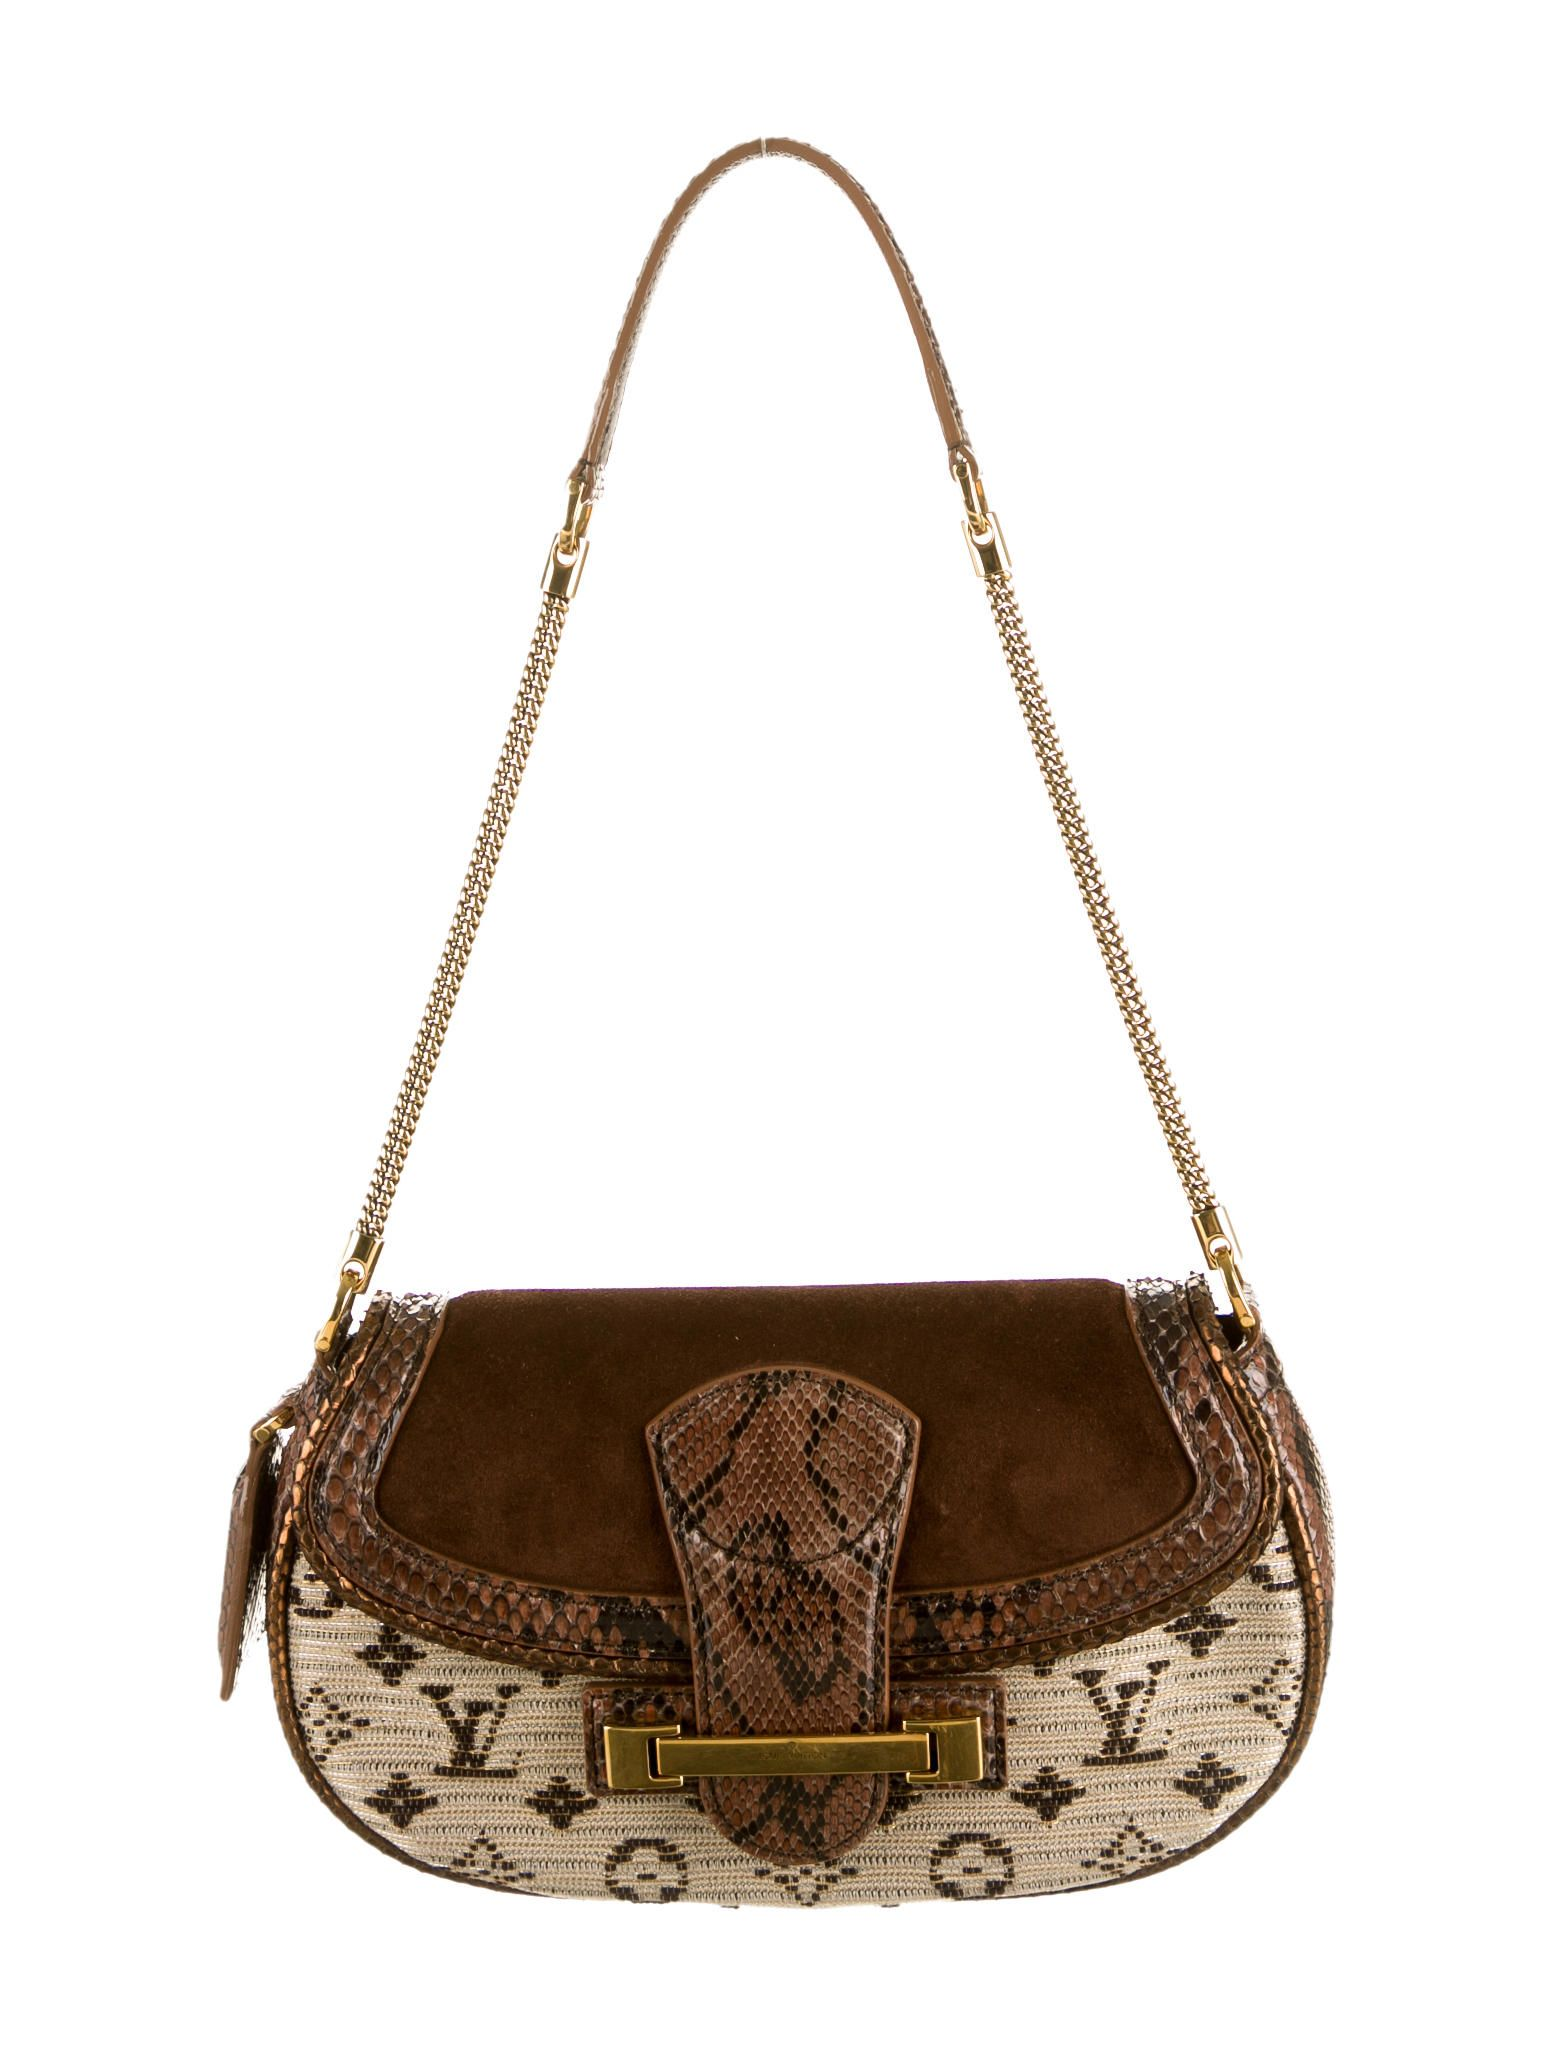 Ln Order To Get Best Price Louis Vuitton Handbags On In Online Ecommerce S